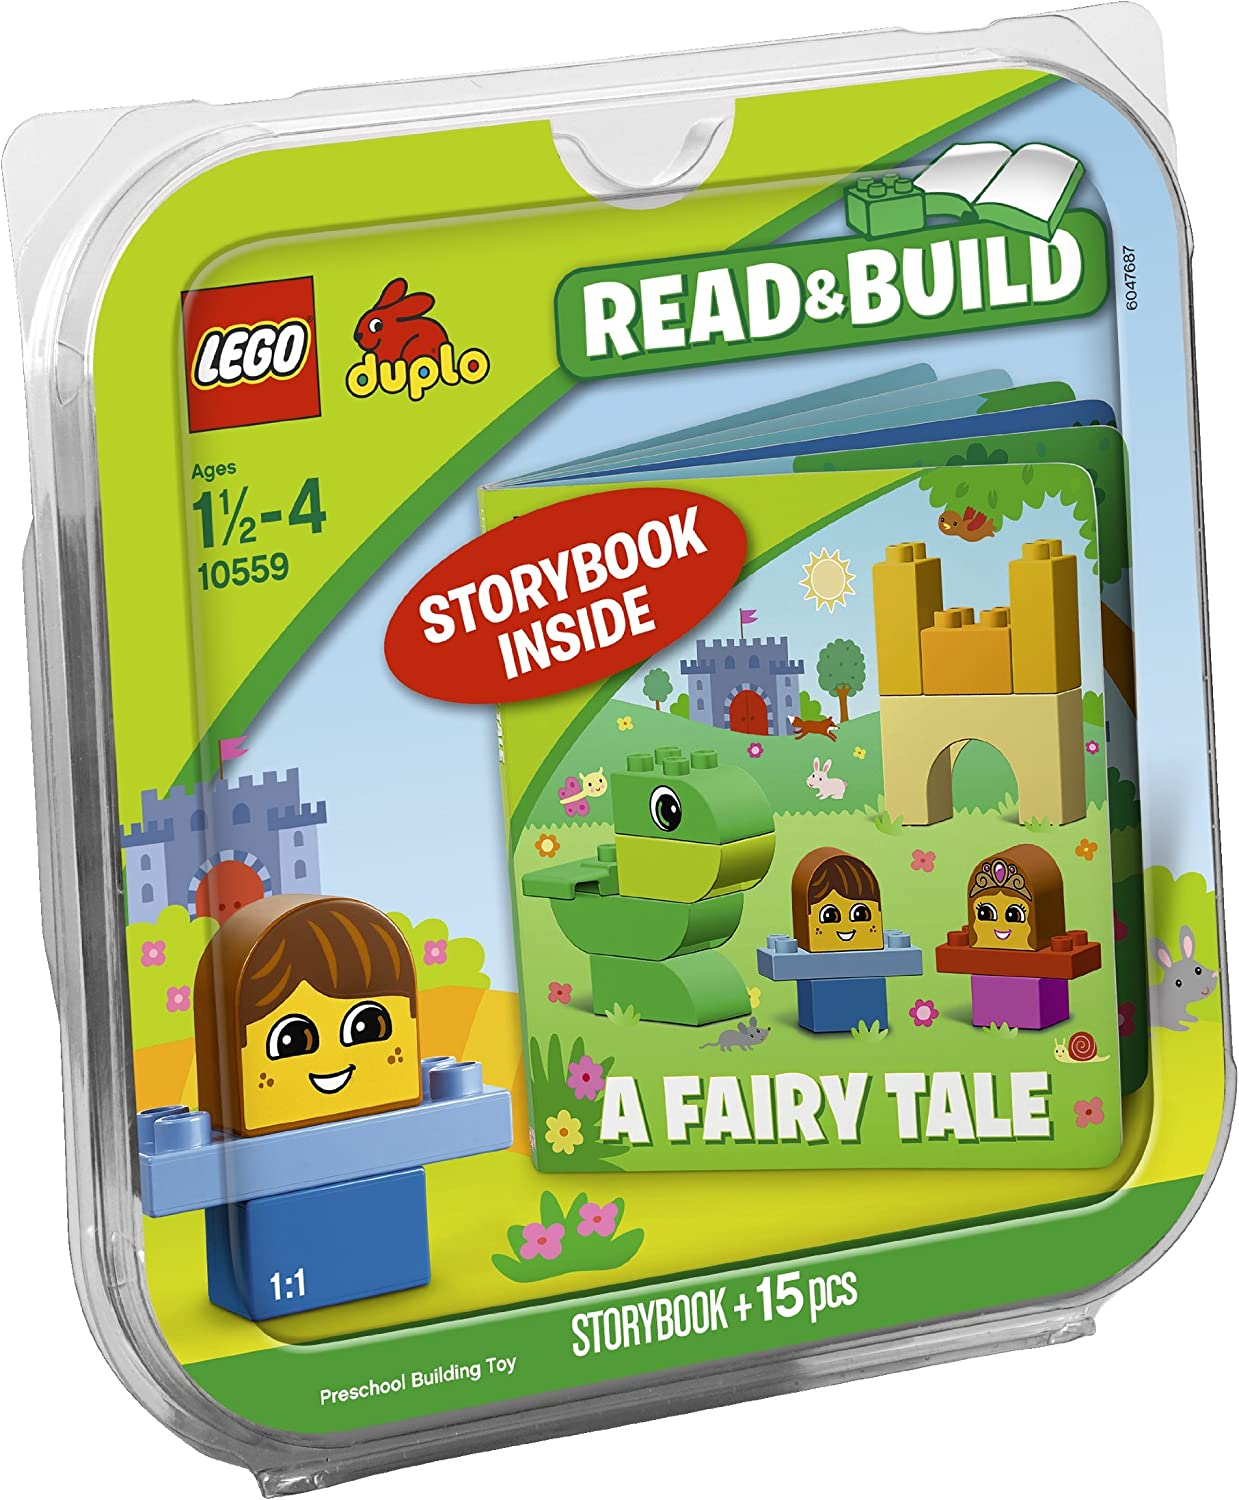 LEGO A Charlotte Mall Fairy Tale 10559 Interlocking Sets Ranking TOP6 Toy Building